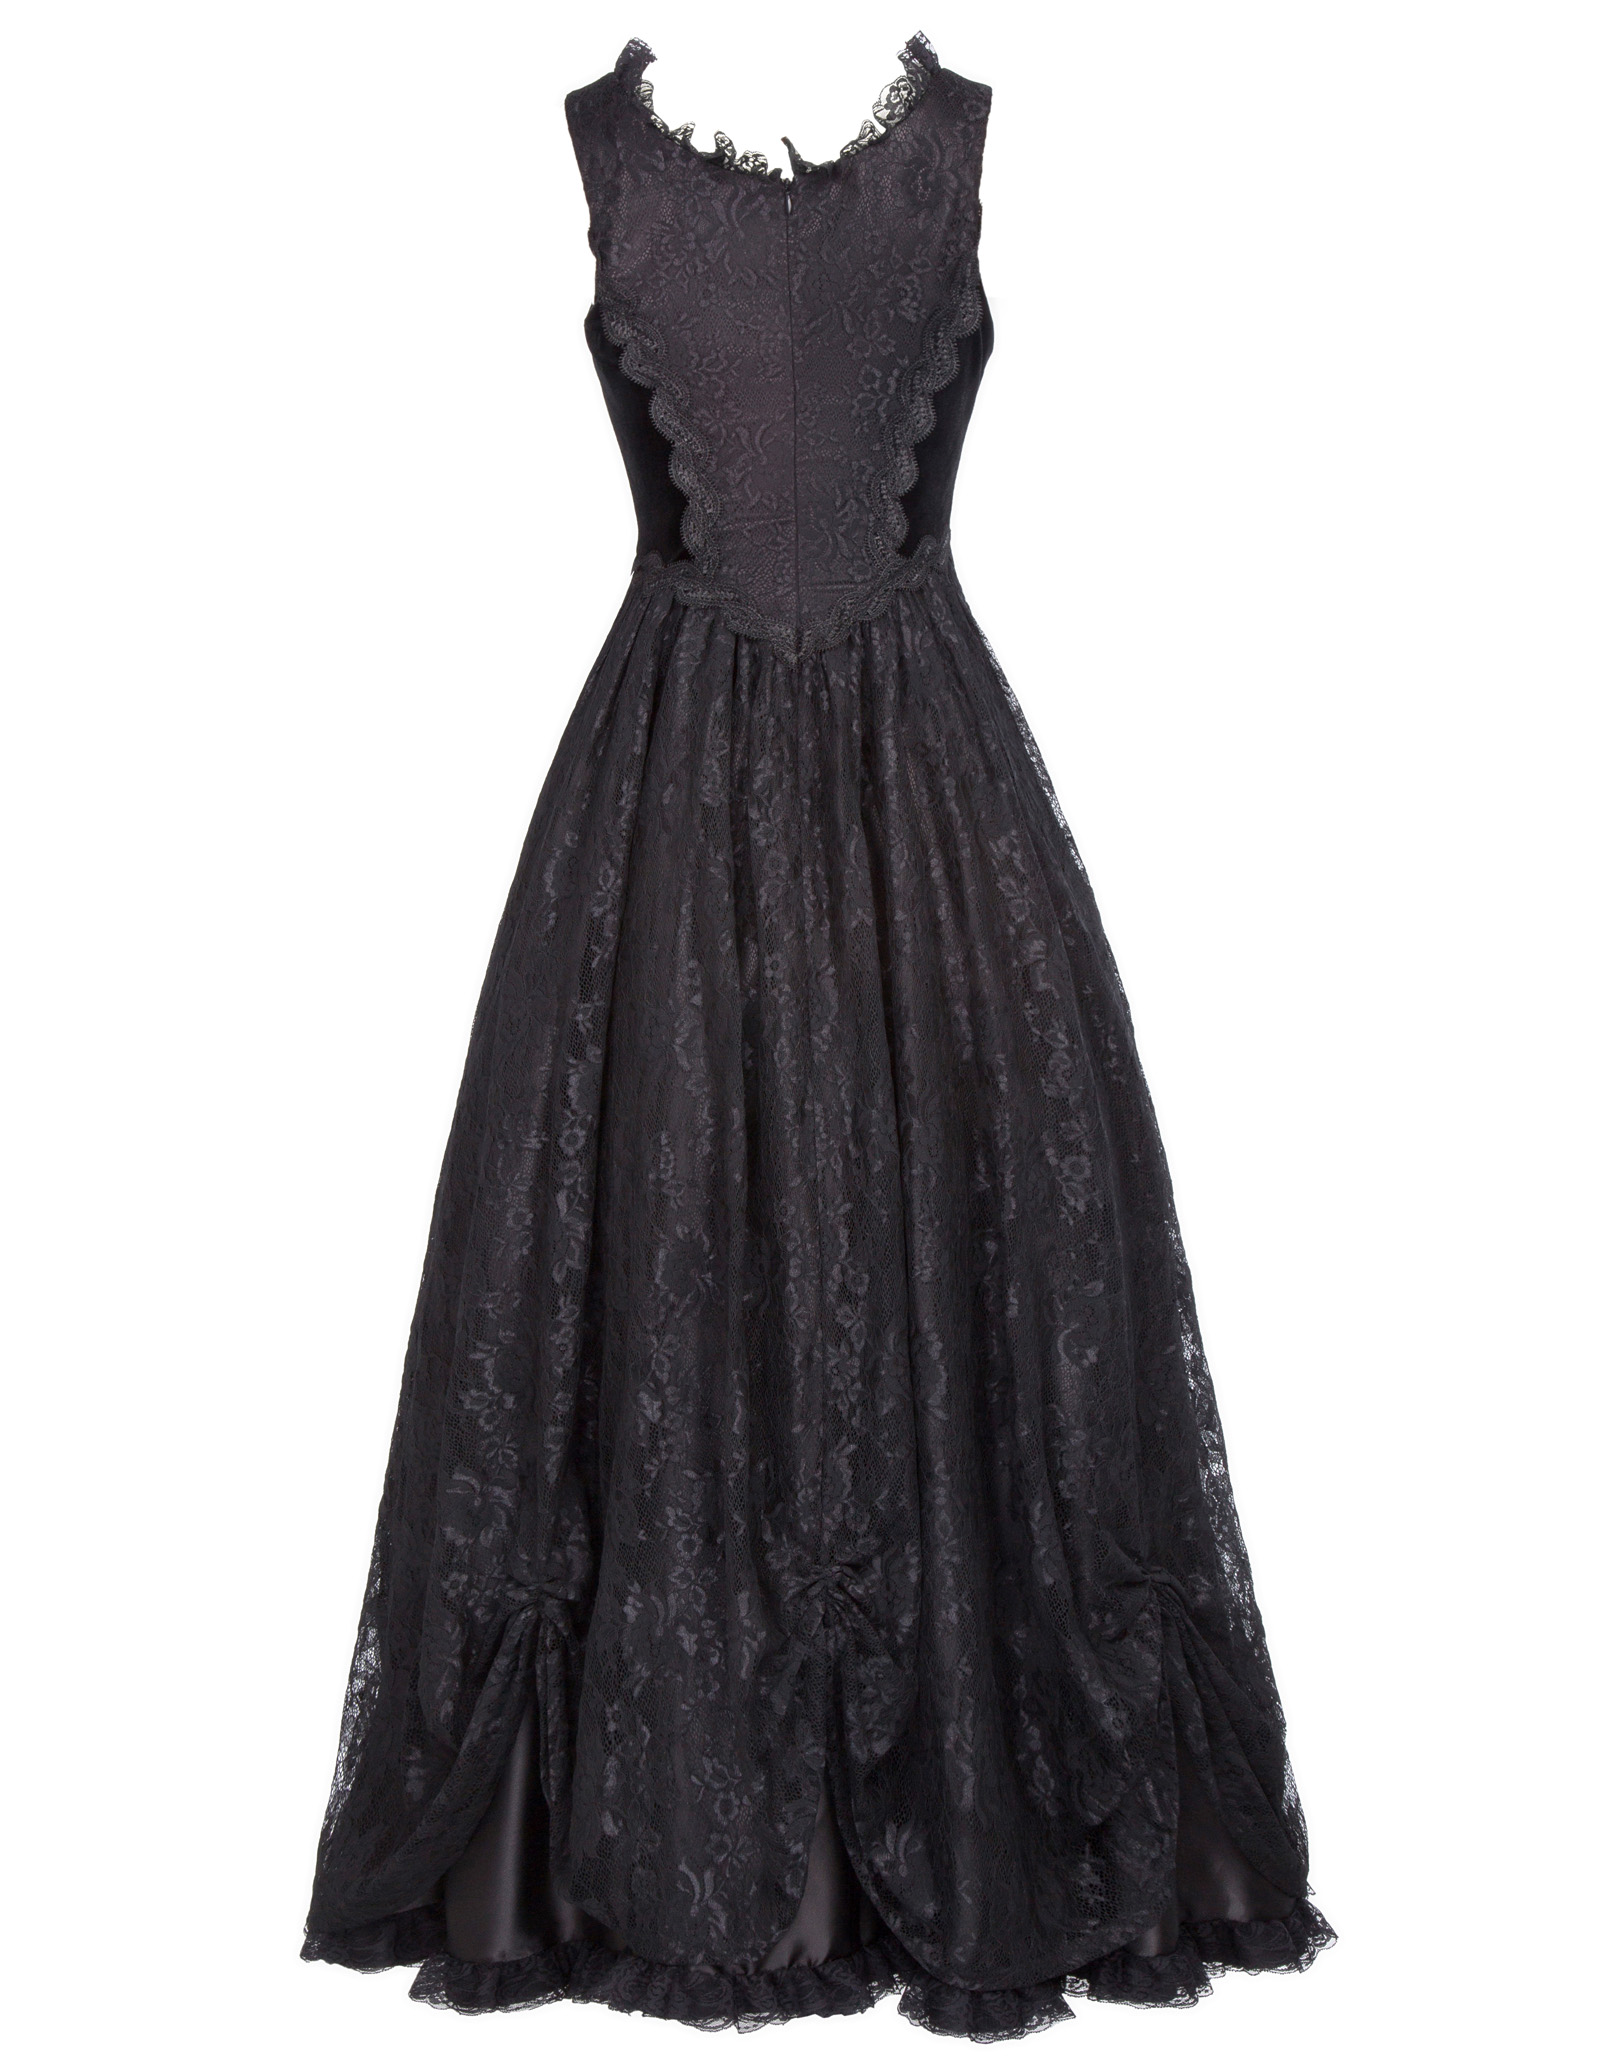 Retro Victorian Long Dress Gown Gothic Theater Steampunk Lace&Satin Bustle Dress